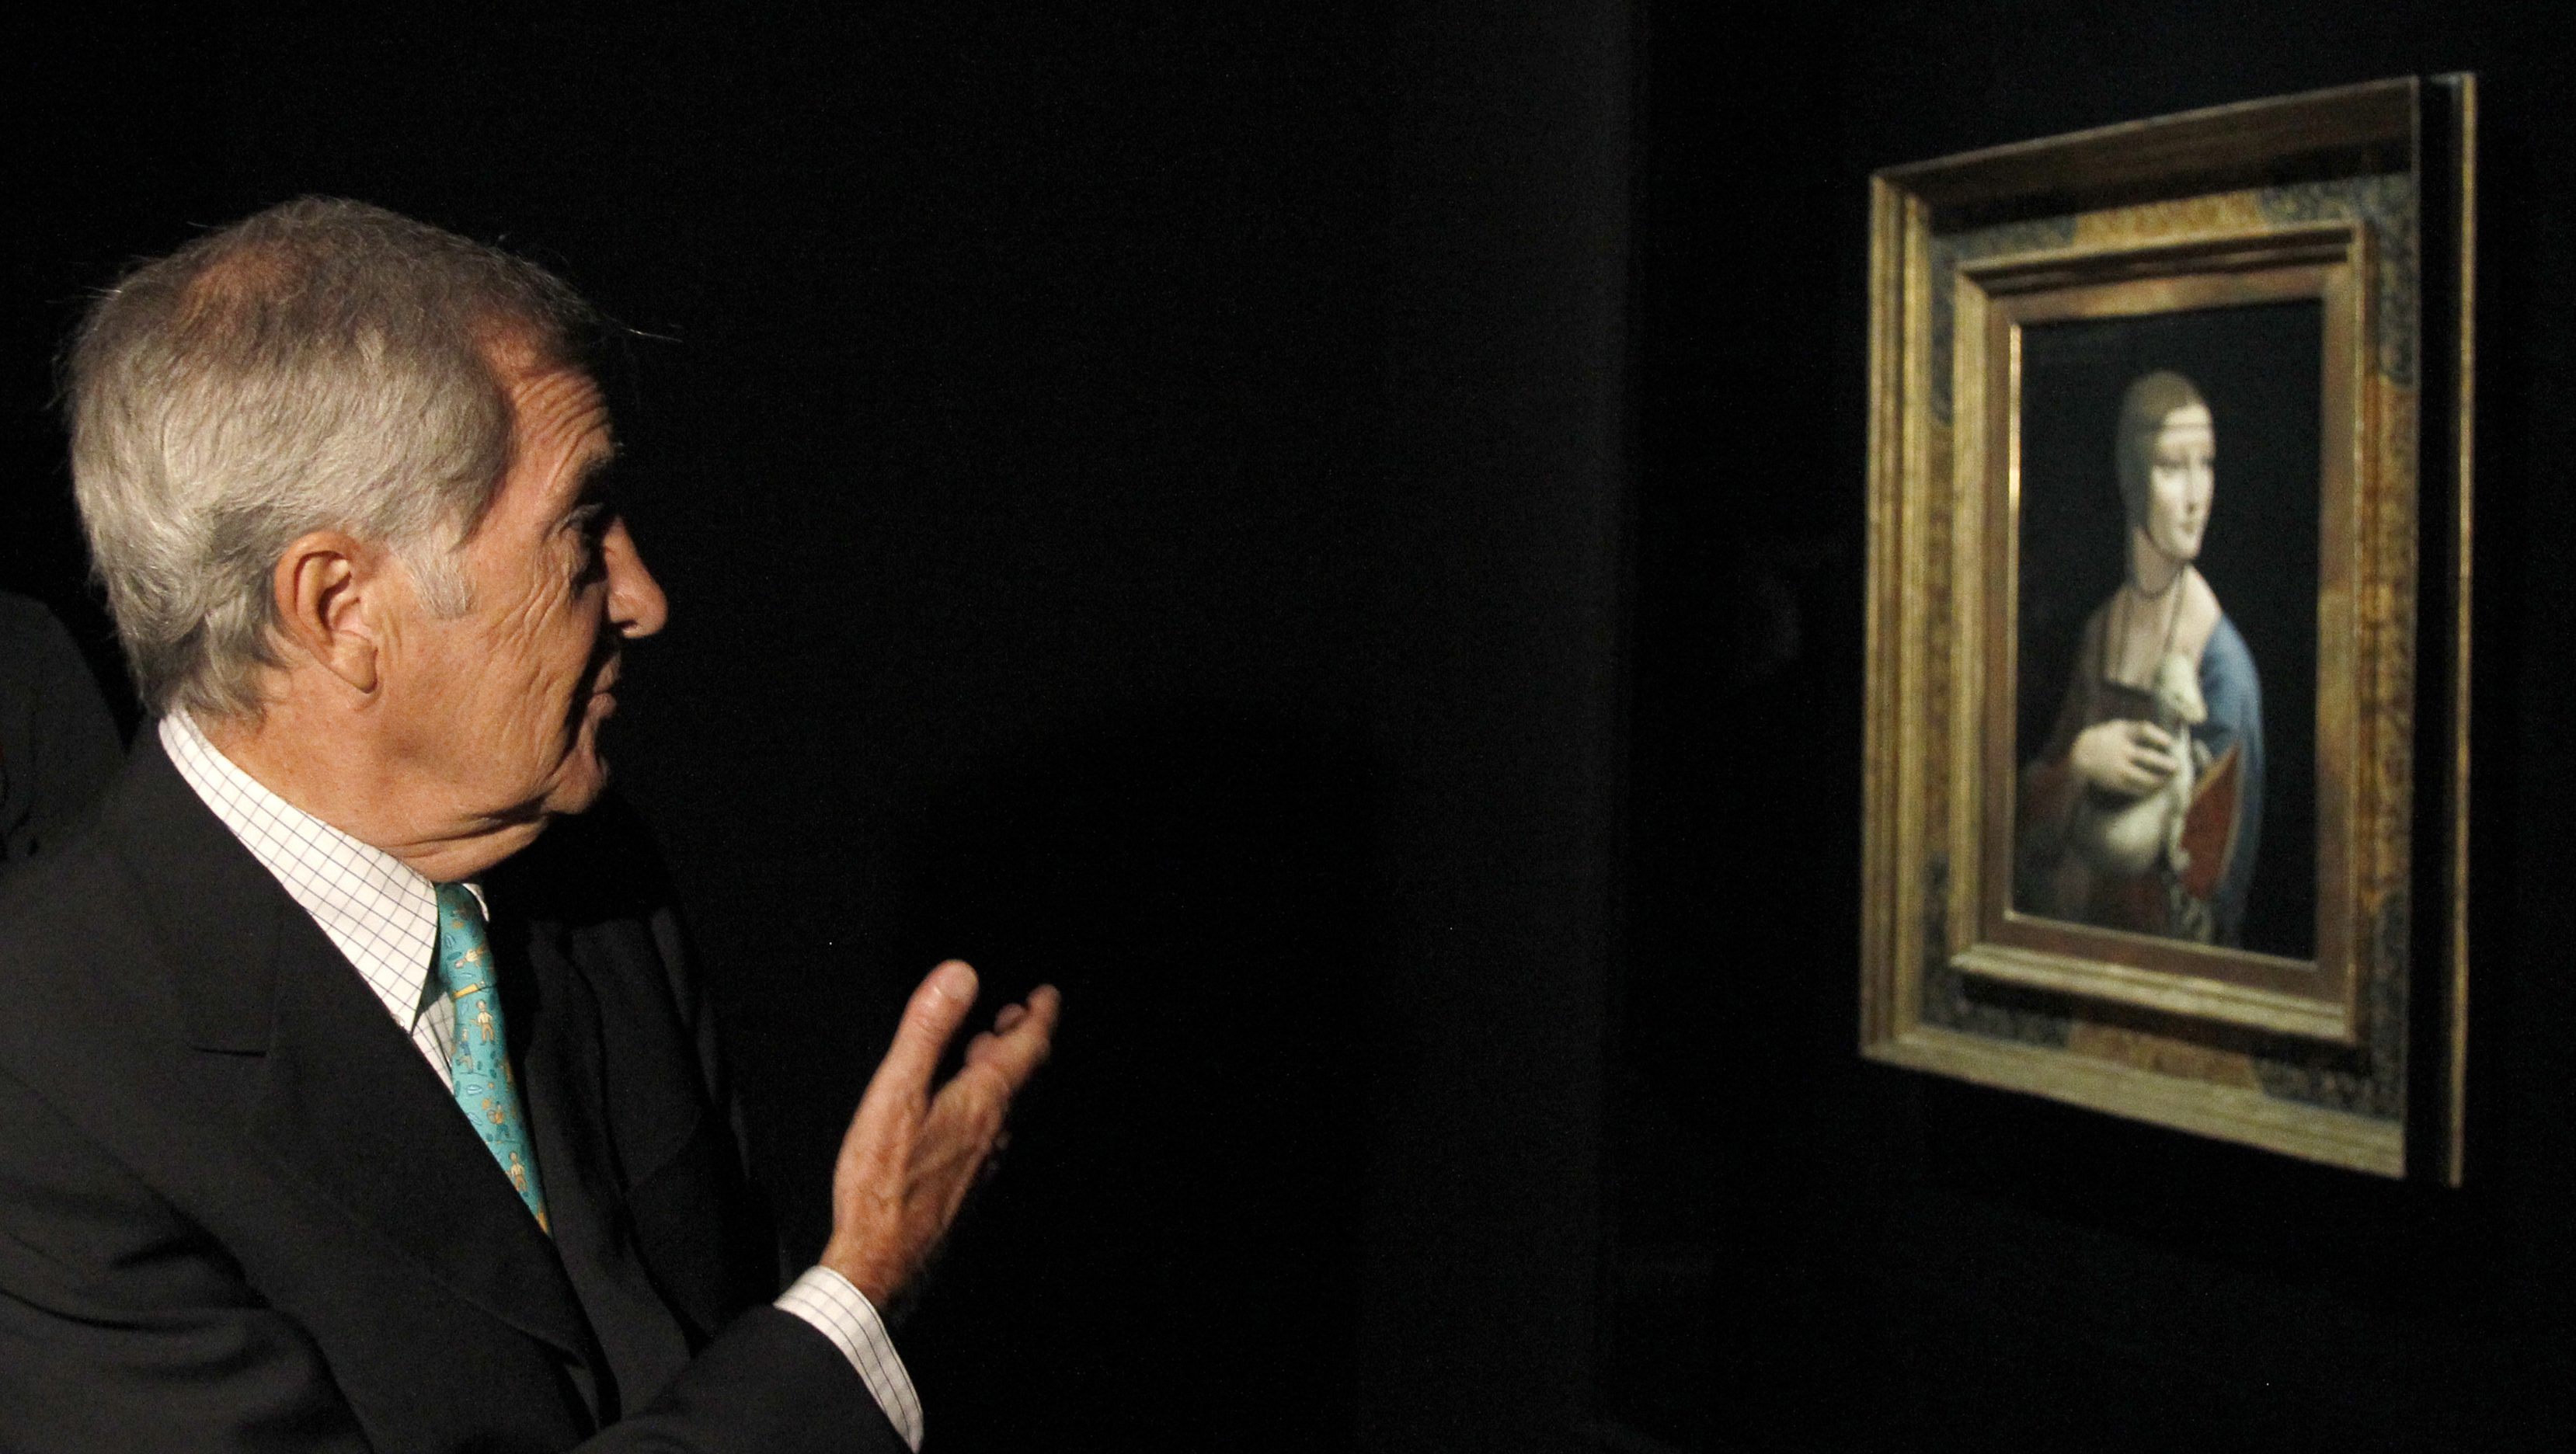 """Prince Adam Czartoryski of Poland owner of the portrait """"Dame mit dem Hermelin"""" (""""The Lady with Ermine"""") by Leonardo da Vinci, gives a TV interview beside the painting before the opening of the exhibition """"Gesichter der Renaissance"""" (Renaissance Faces) at the Bode museum in Berlin August 24, 2011. The exhibition of some 170 masterpieces of Italian portraiture runs from August 25 till November 20 in the German capital.  REUTERS/Tobias Schwarz (GERMANY - Tags: ENTERTAINMENT ROYALS) - RTR2Q9GP"""